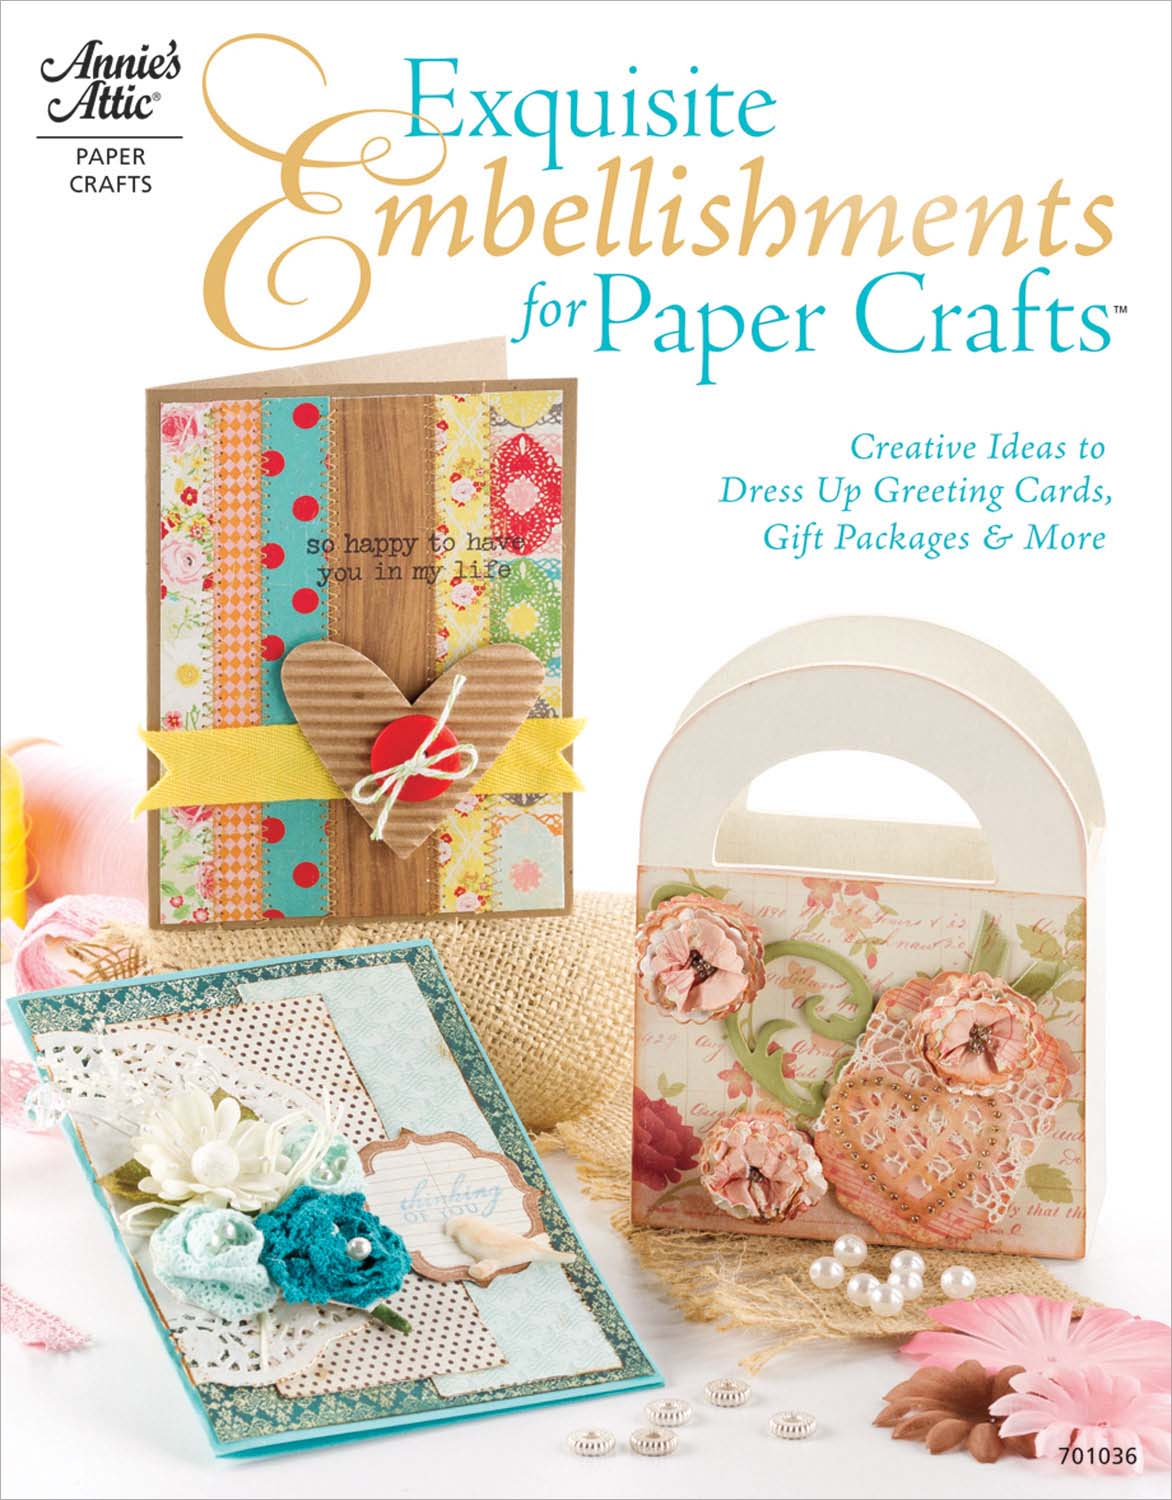 Exquisite Embellishments for Paper Crafts Creative Ideas to Dress Up Greeting Cards, Gift Packages & More